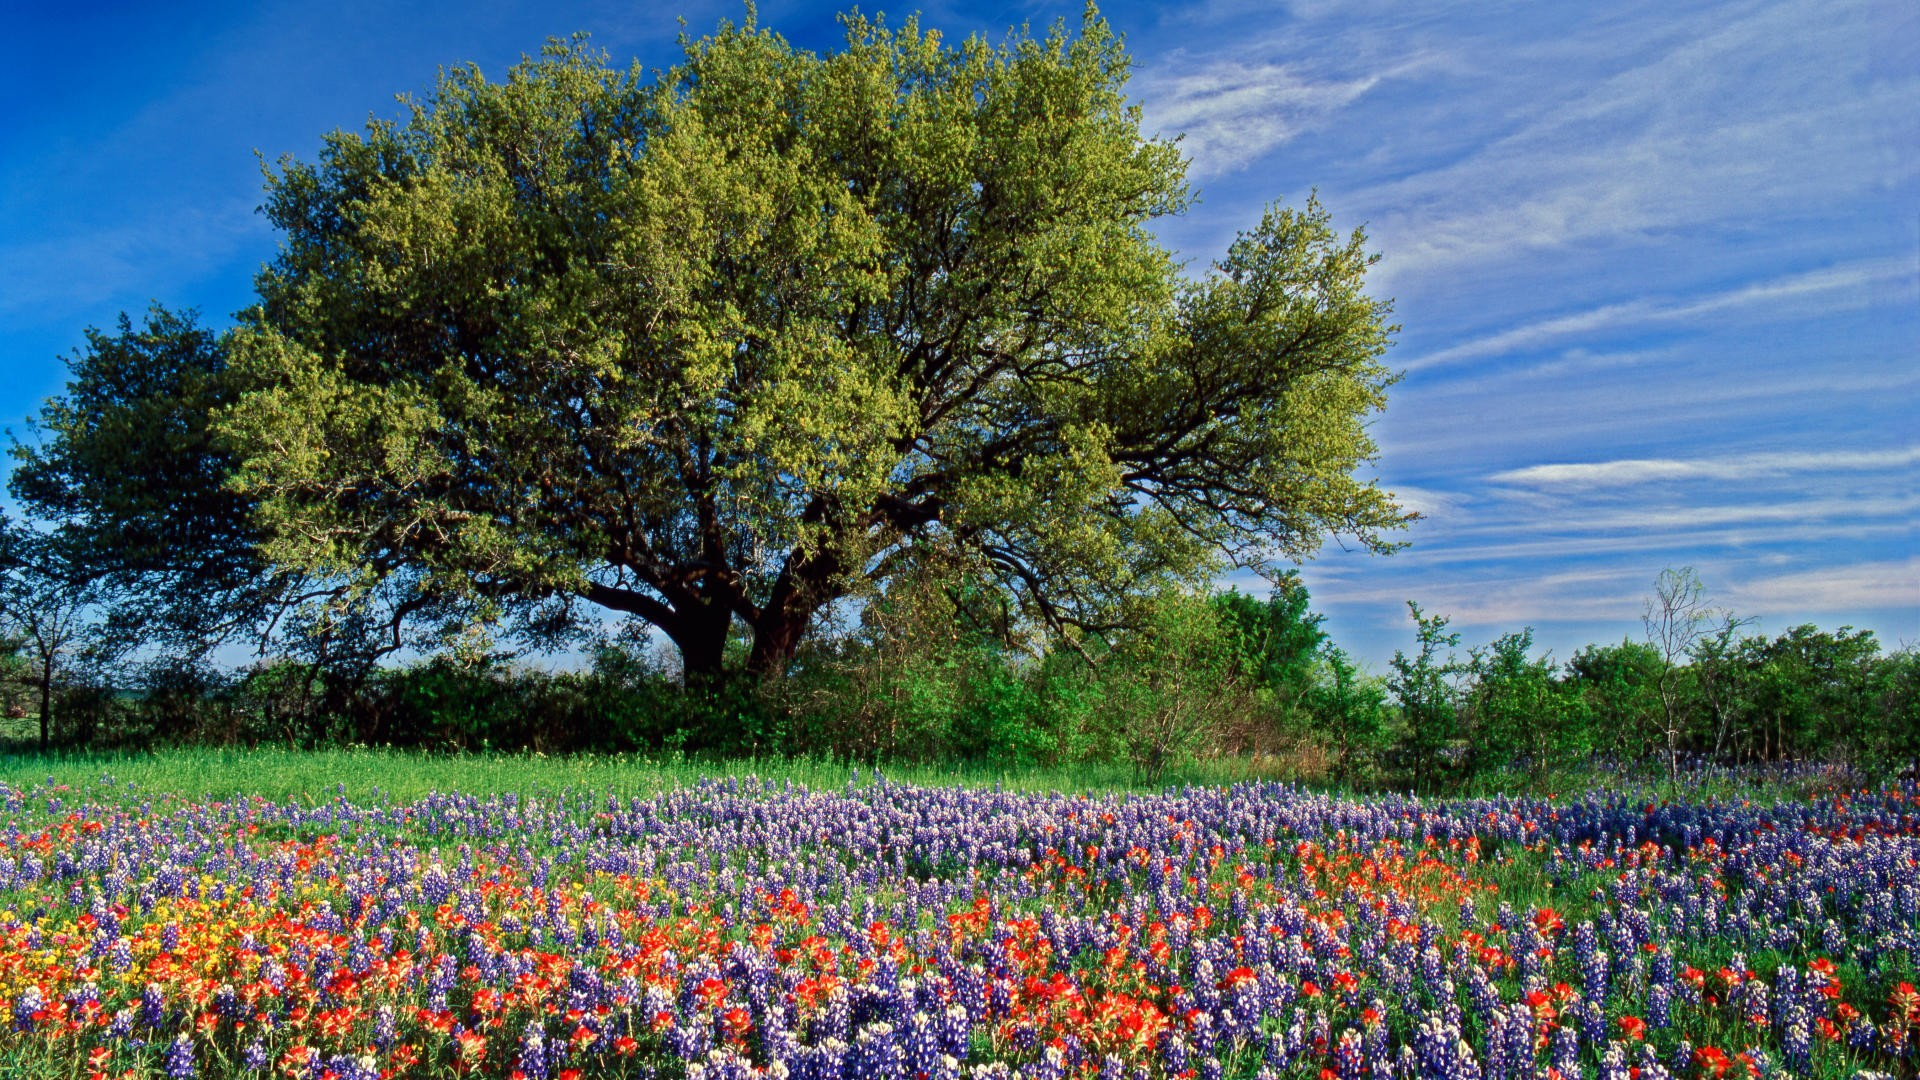 Texas Landscape Wallpaper